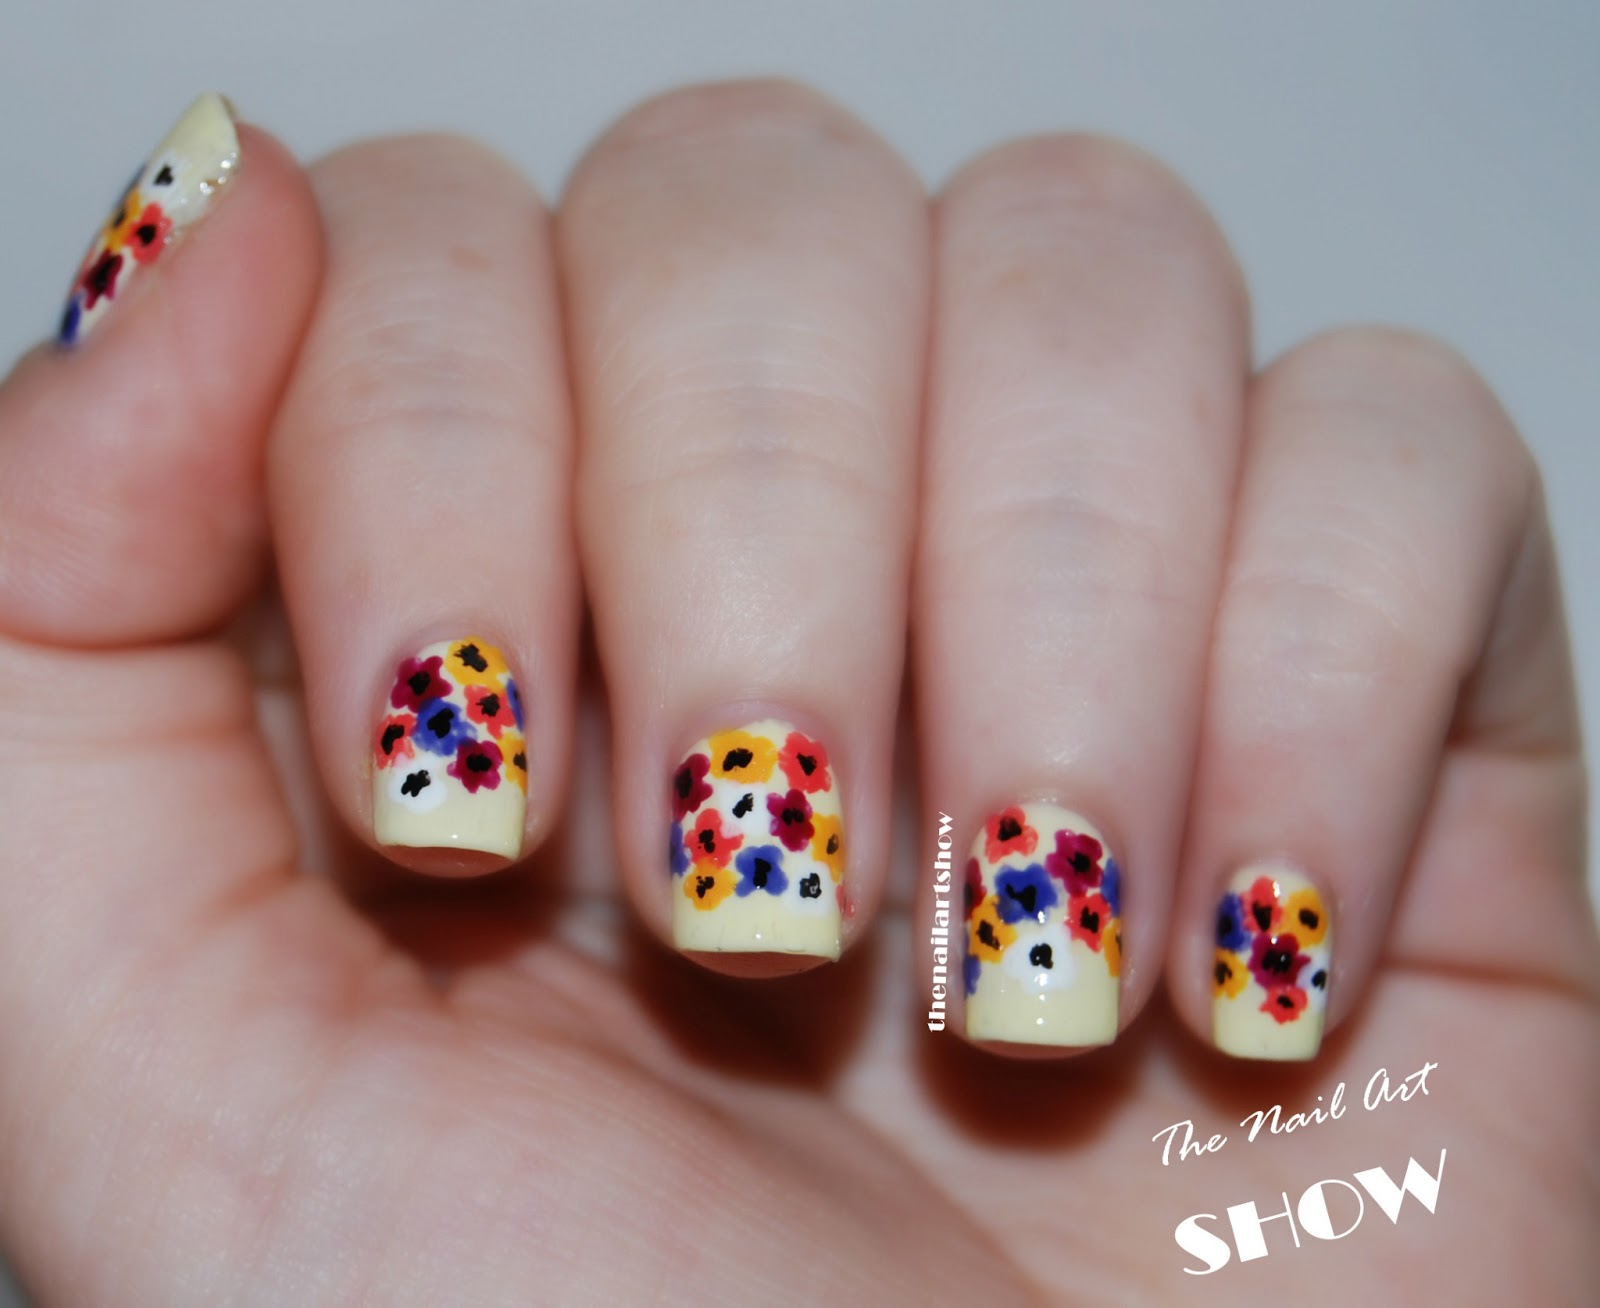 June Nail Art Challenge  Day 4: Flowers   The Nail Art Show